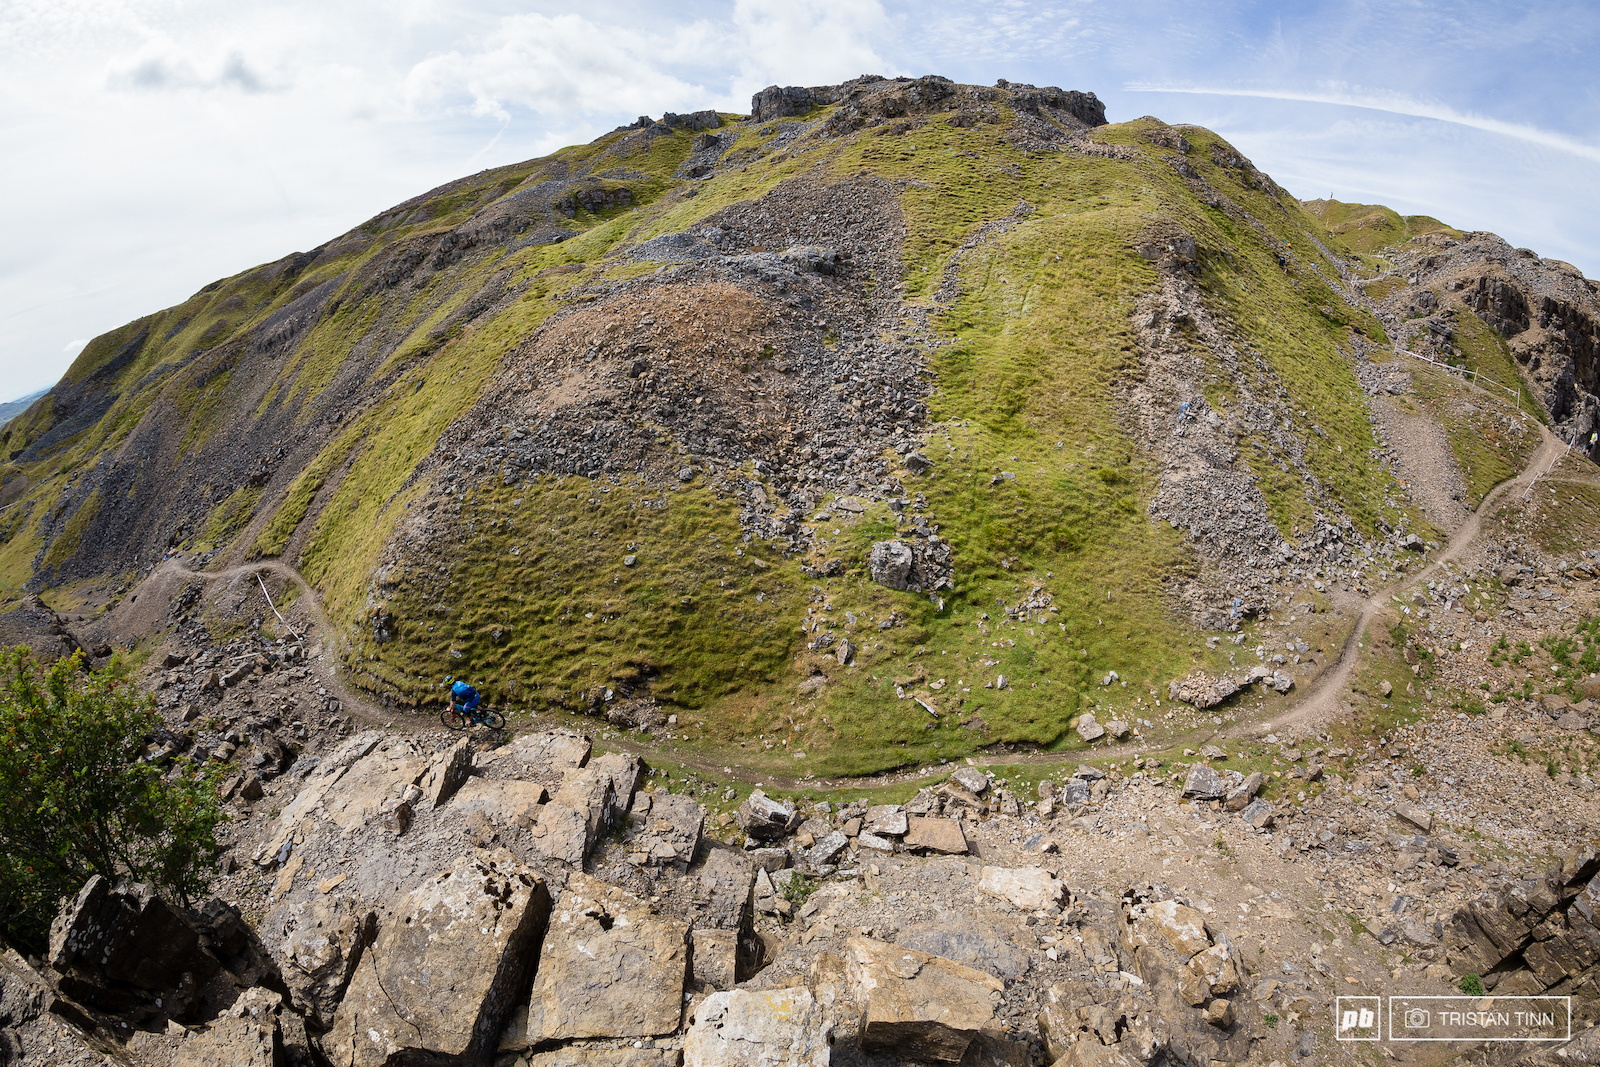 The jagged hillsides provide a dramatic backdrop for a race